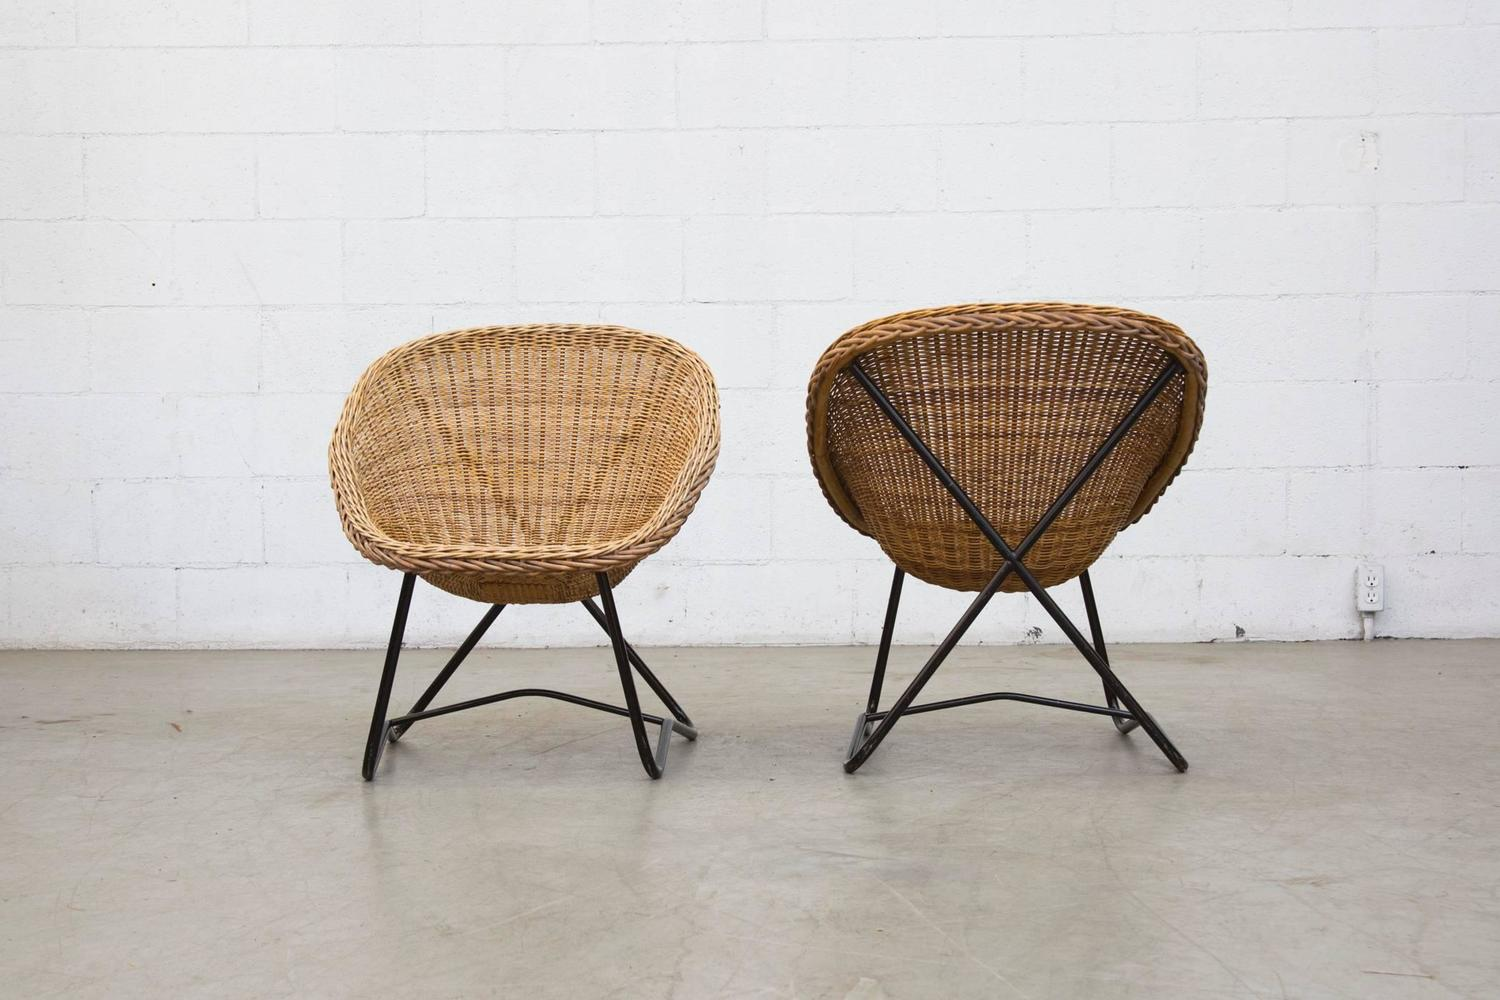 Wicker Bowl Chair Pair Of Dirk Van Sliedrecht Woven Bowl Chair At 1stdibs